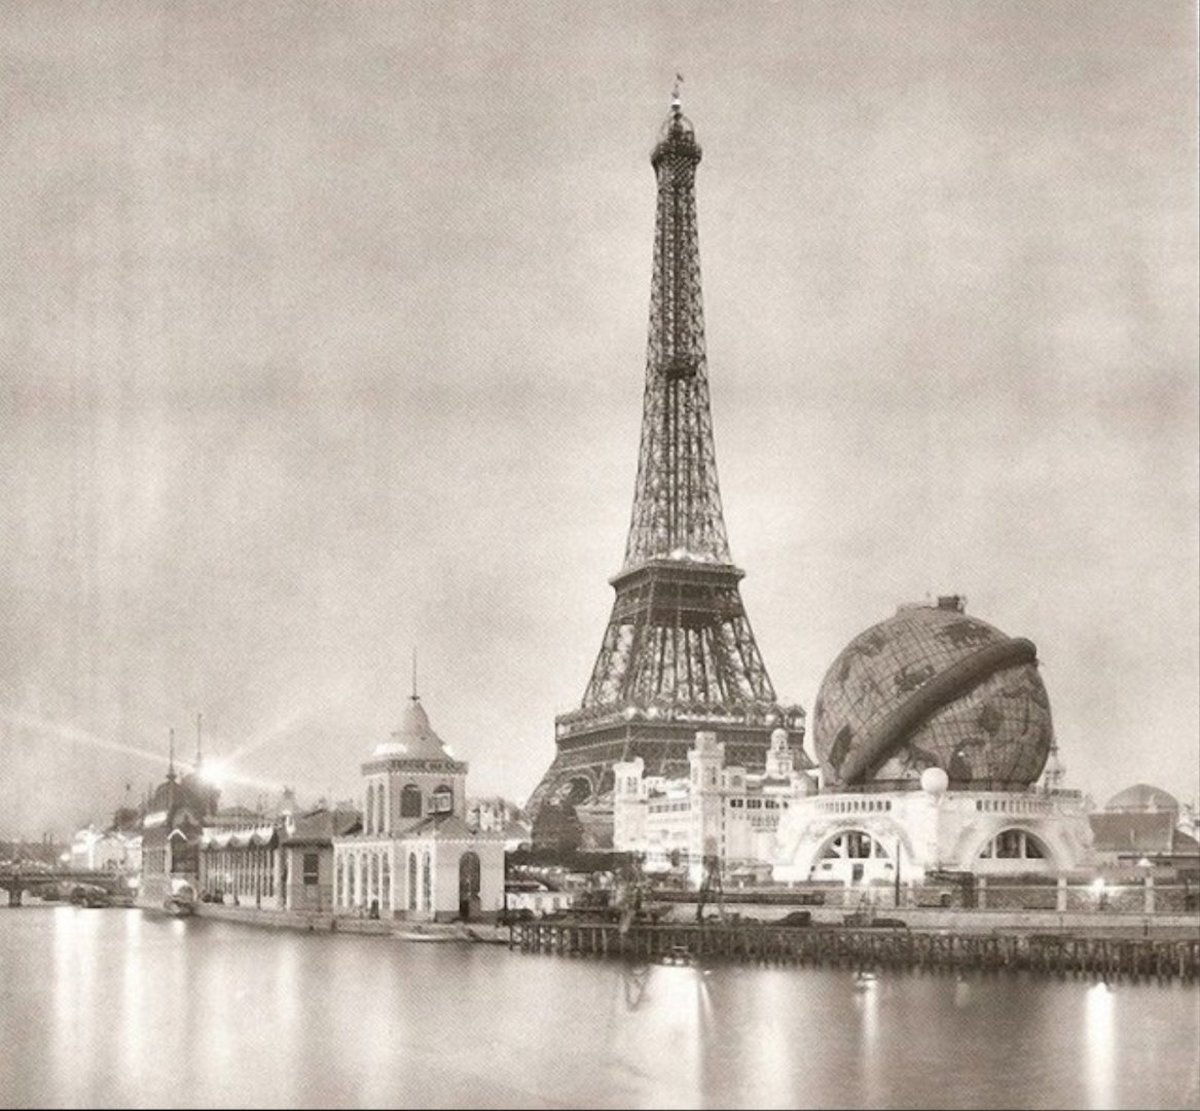 7 photos de Paris prises en 1900 pendant l'Exposition universelle comparées au Paris d'aujourd'hui ! By Mélanie D.  Photos-paris-evolution-1900-3